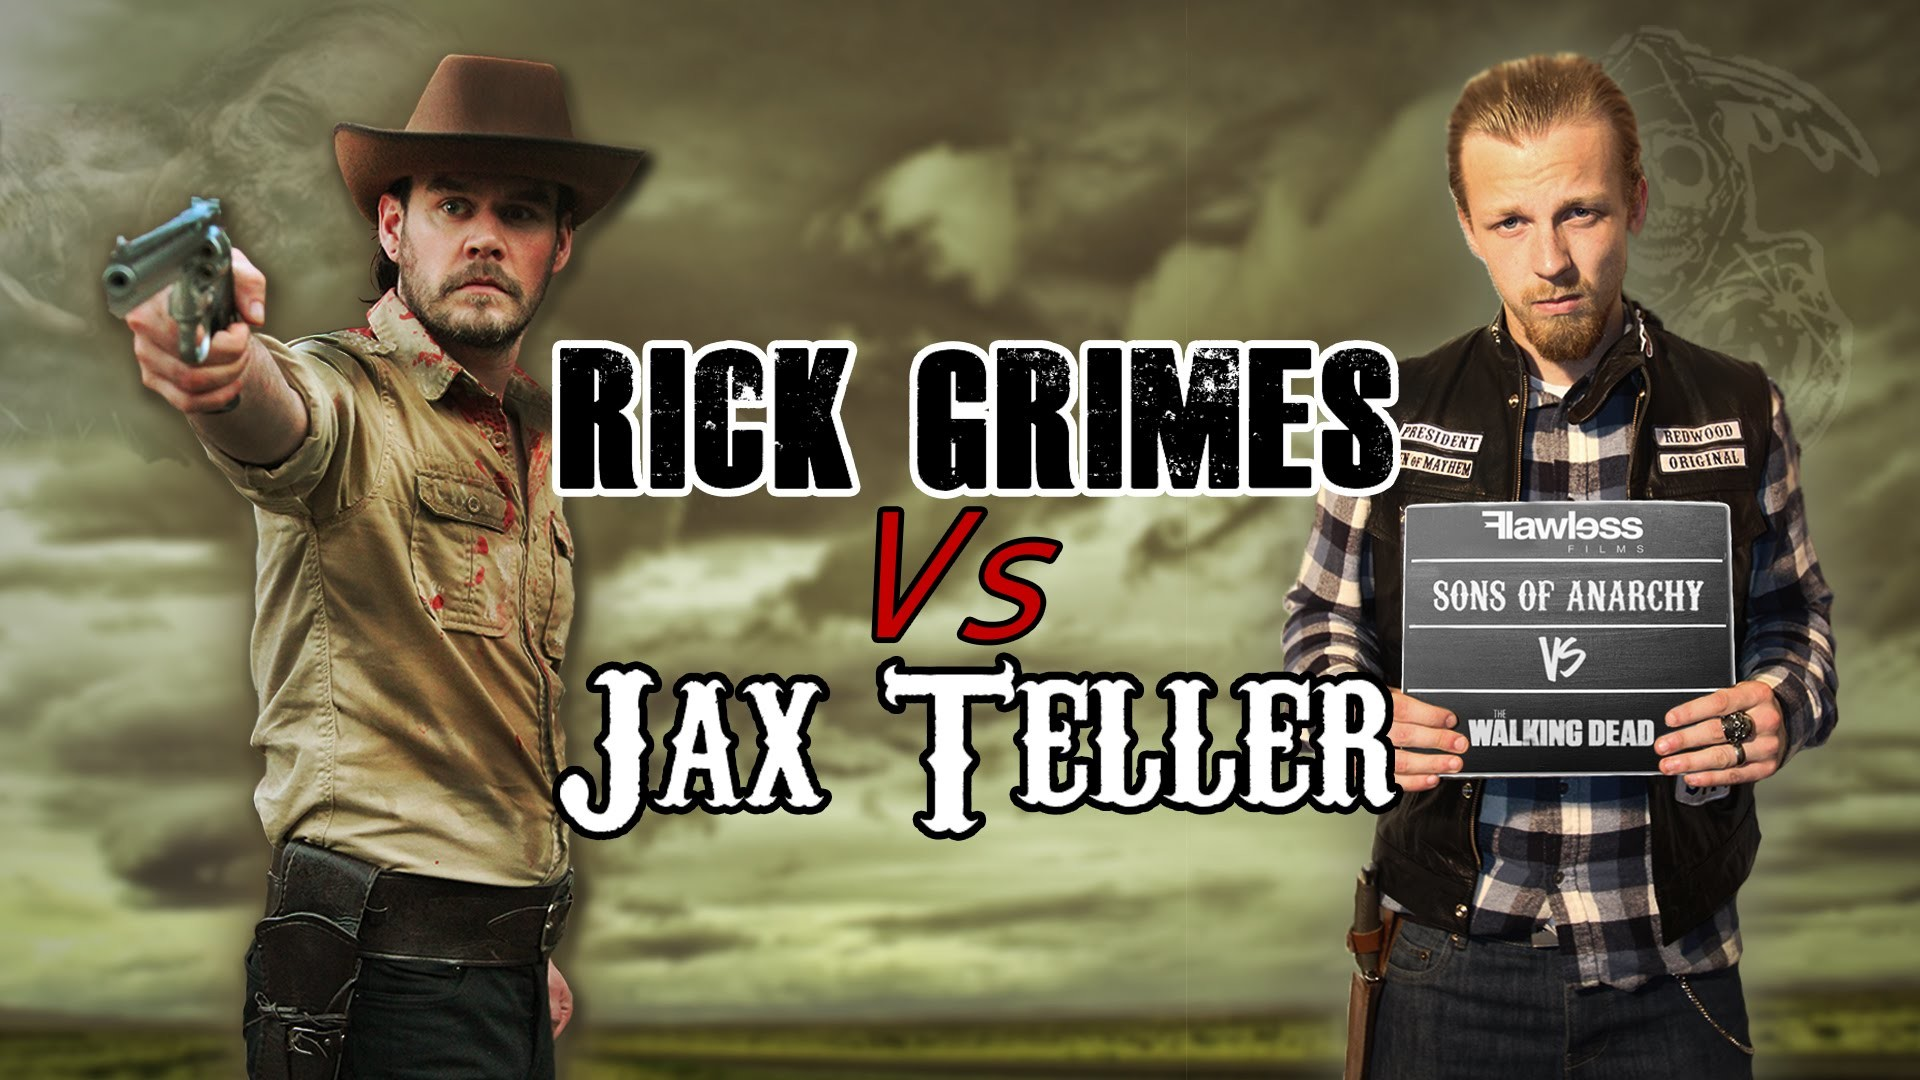 1920x1080 Rick Grimes Vs Jax Teller | The Walking Dead Vs Sons Of Anarchy - YouTube